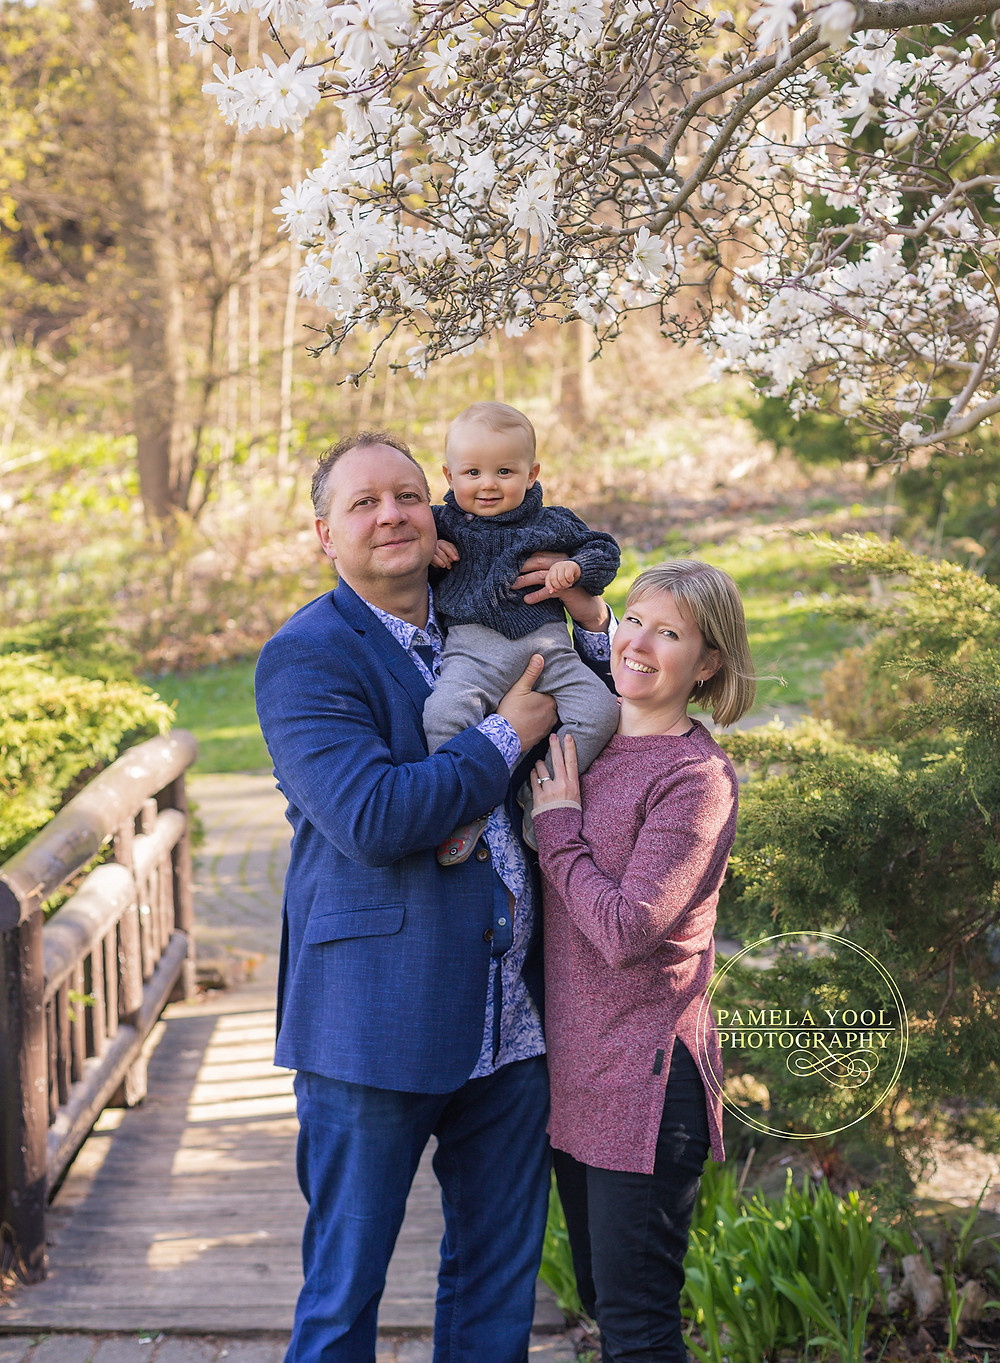 Outdoor Family Portraits in the Park Flowering Blossom Trees